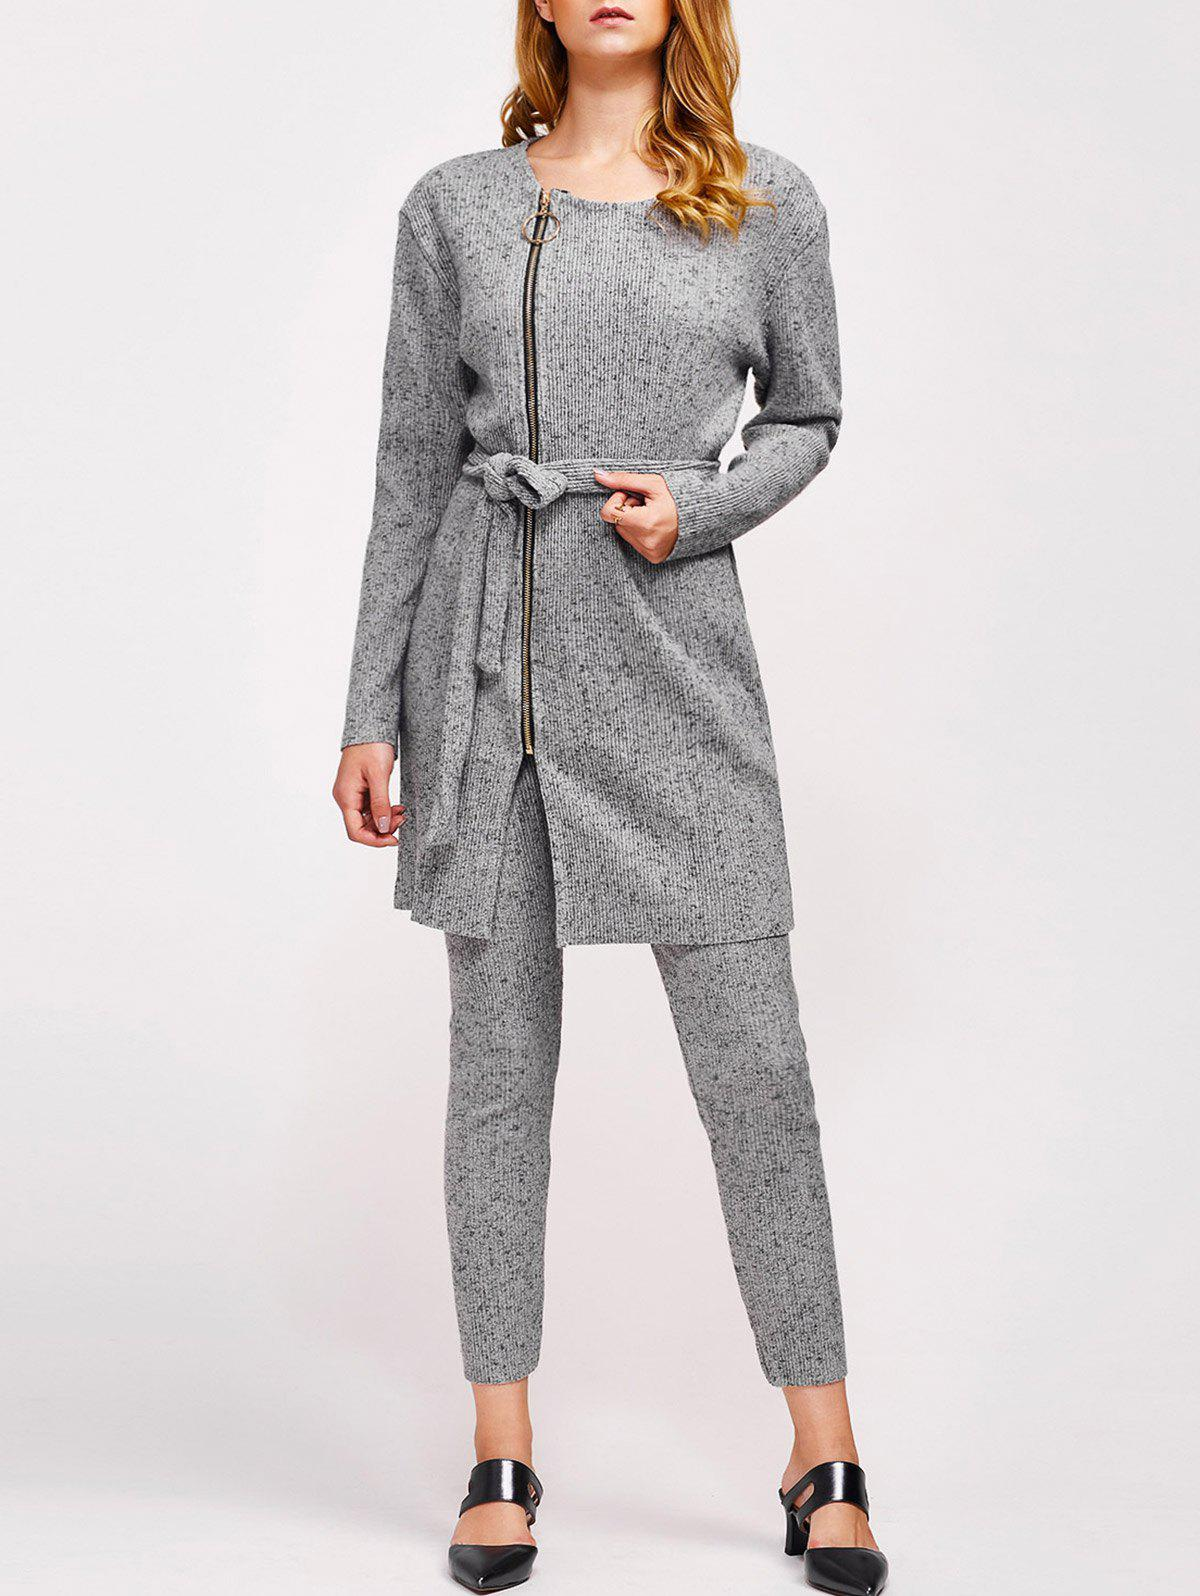 Ribbed Ninth Pants and Belted Zipper CoatWomen<br><br><br>Size: L<br>Color: GRAY